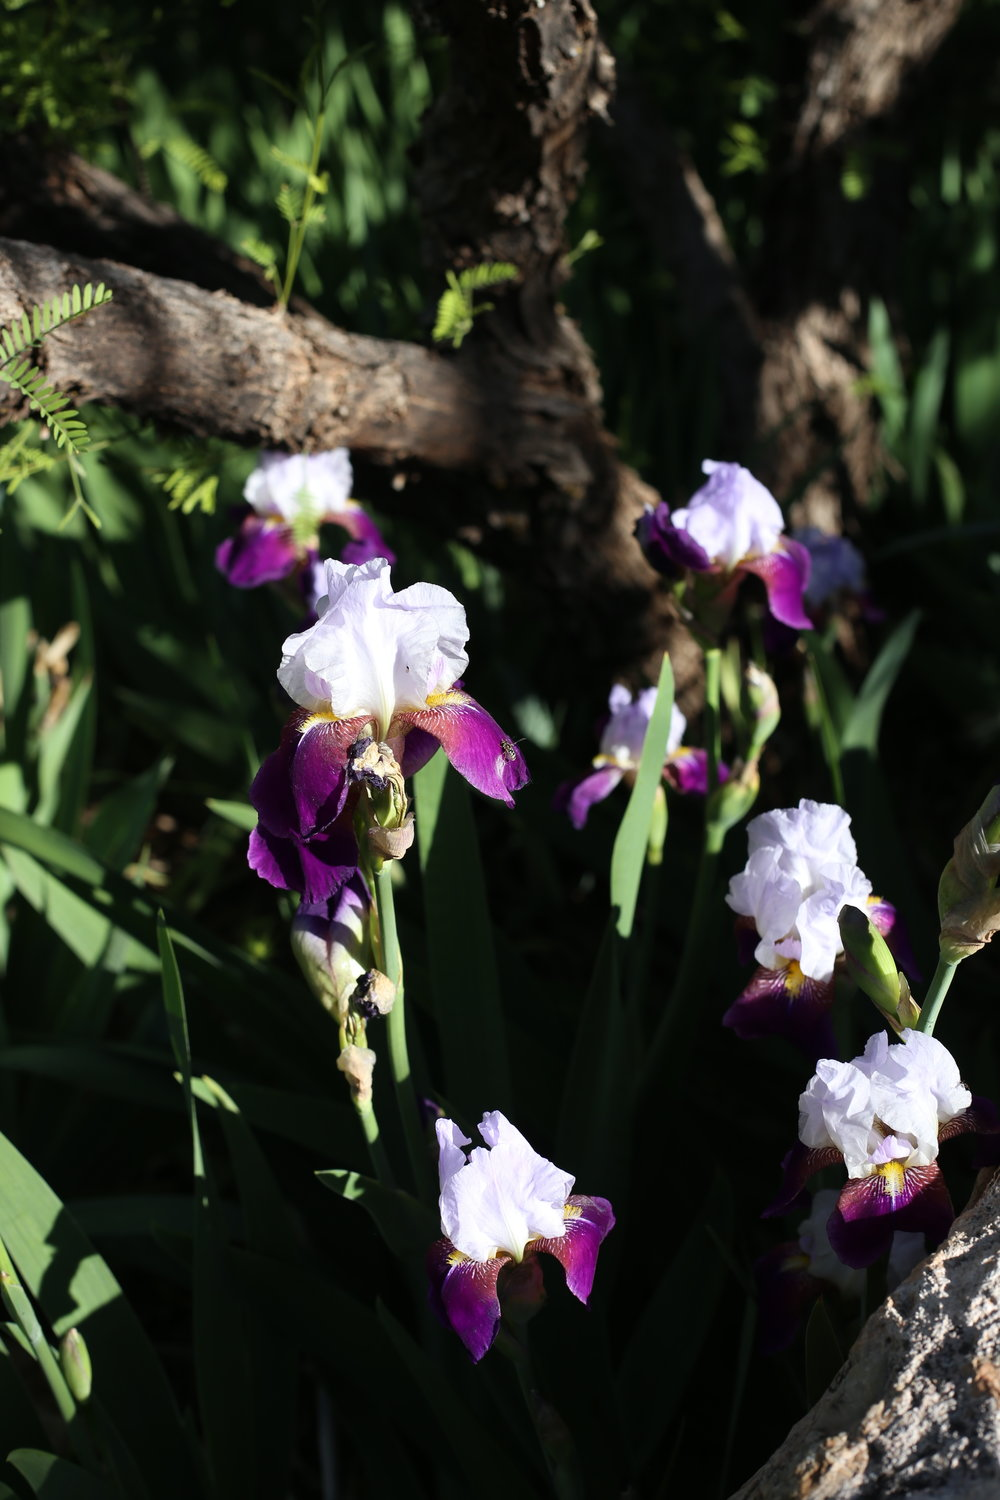 Purple irises in the shadows.